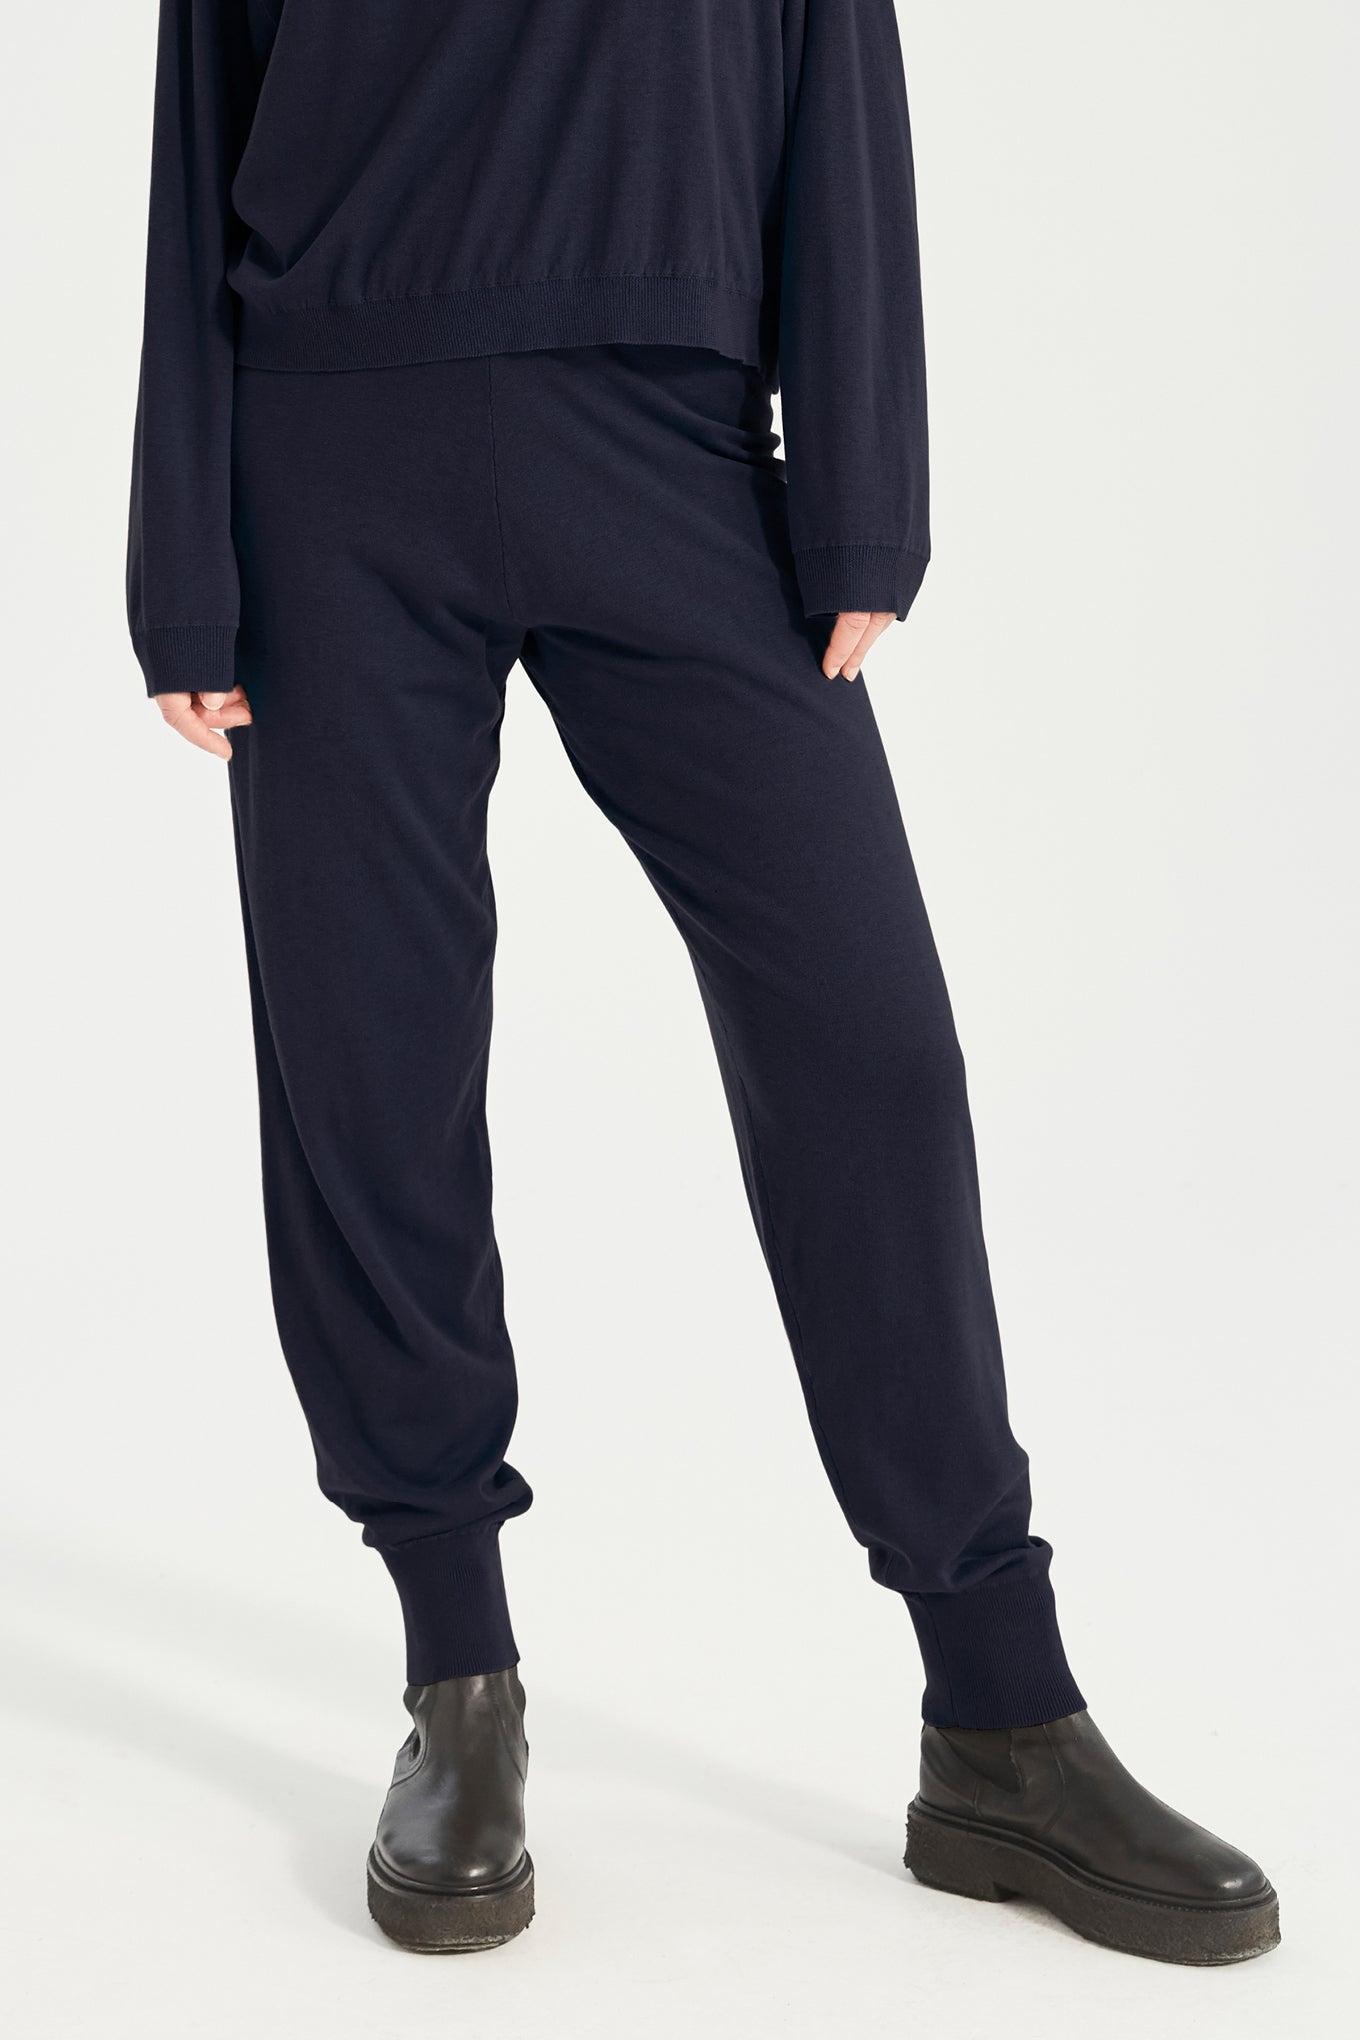 Zana Knit Pants - Navy - Silk/Cotton